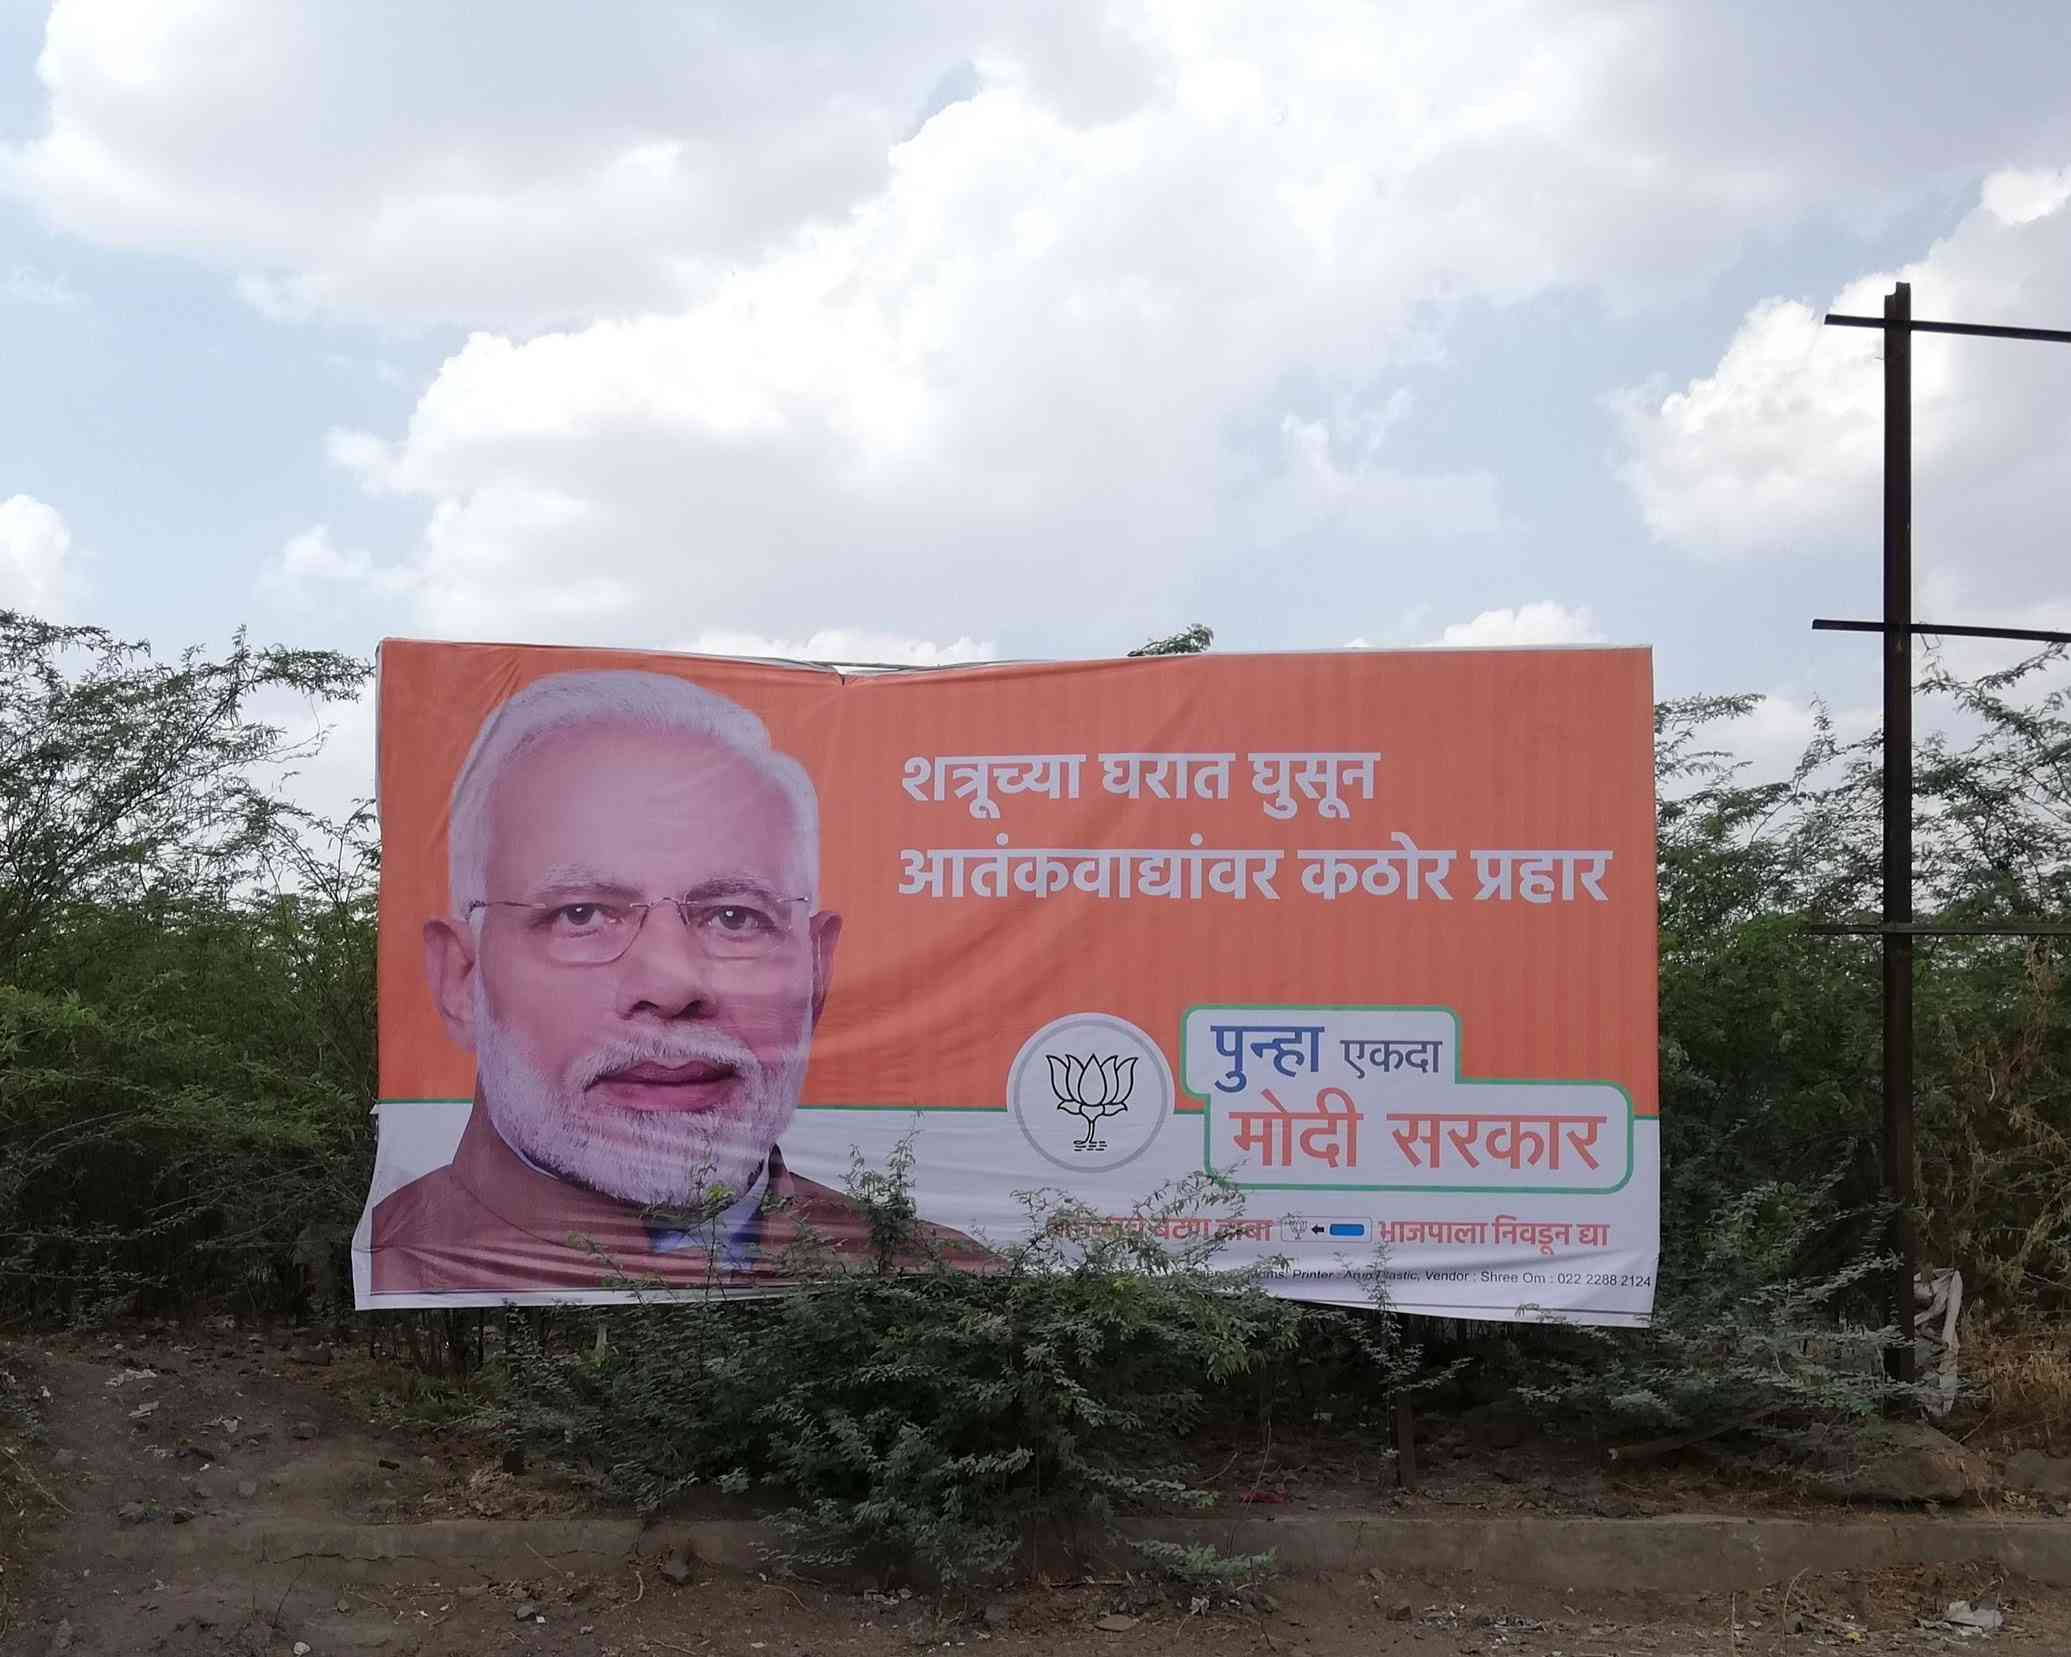 A BJP campaign banner at the Ashti bus stand in Beed. Photo credit: Mridula Chari